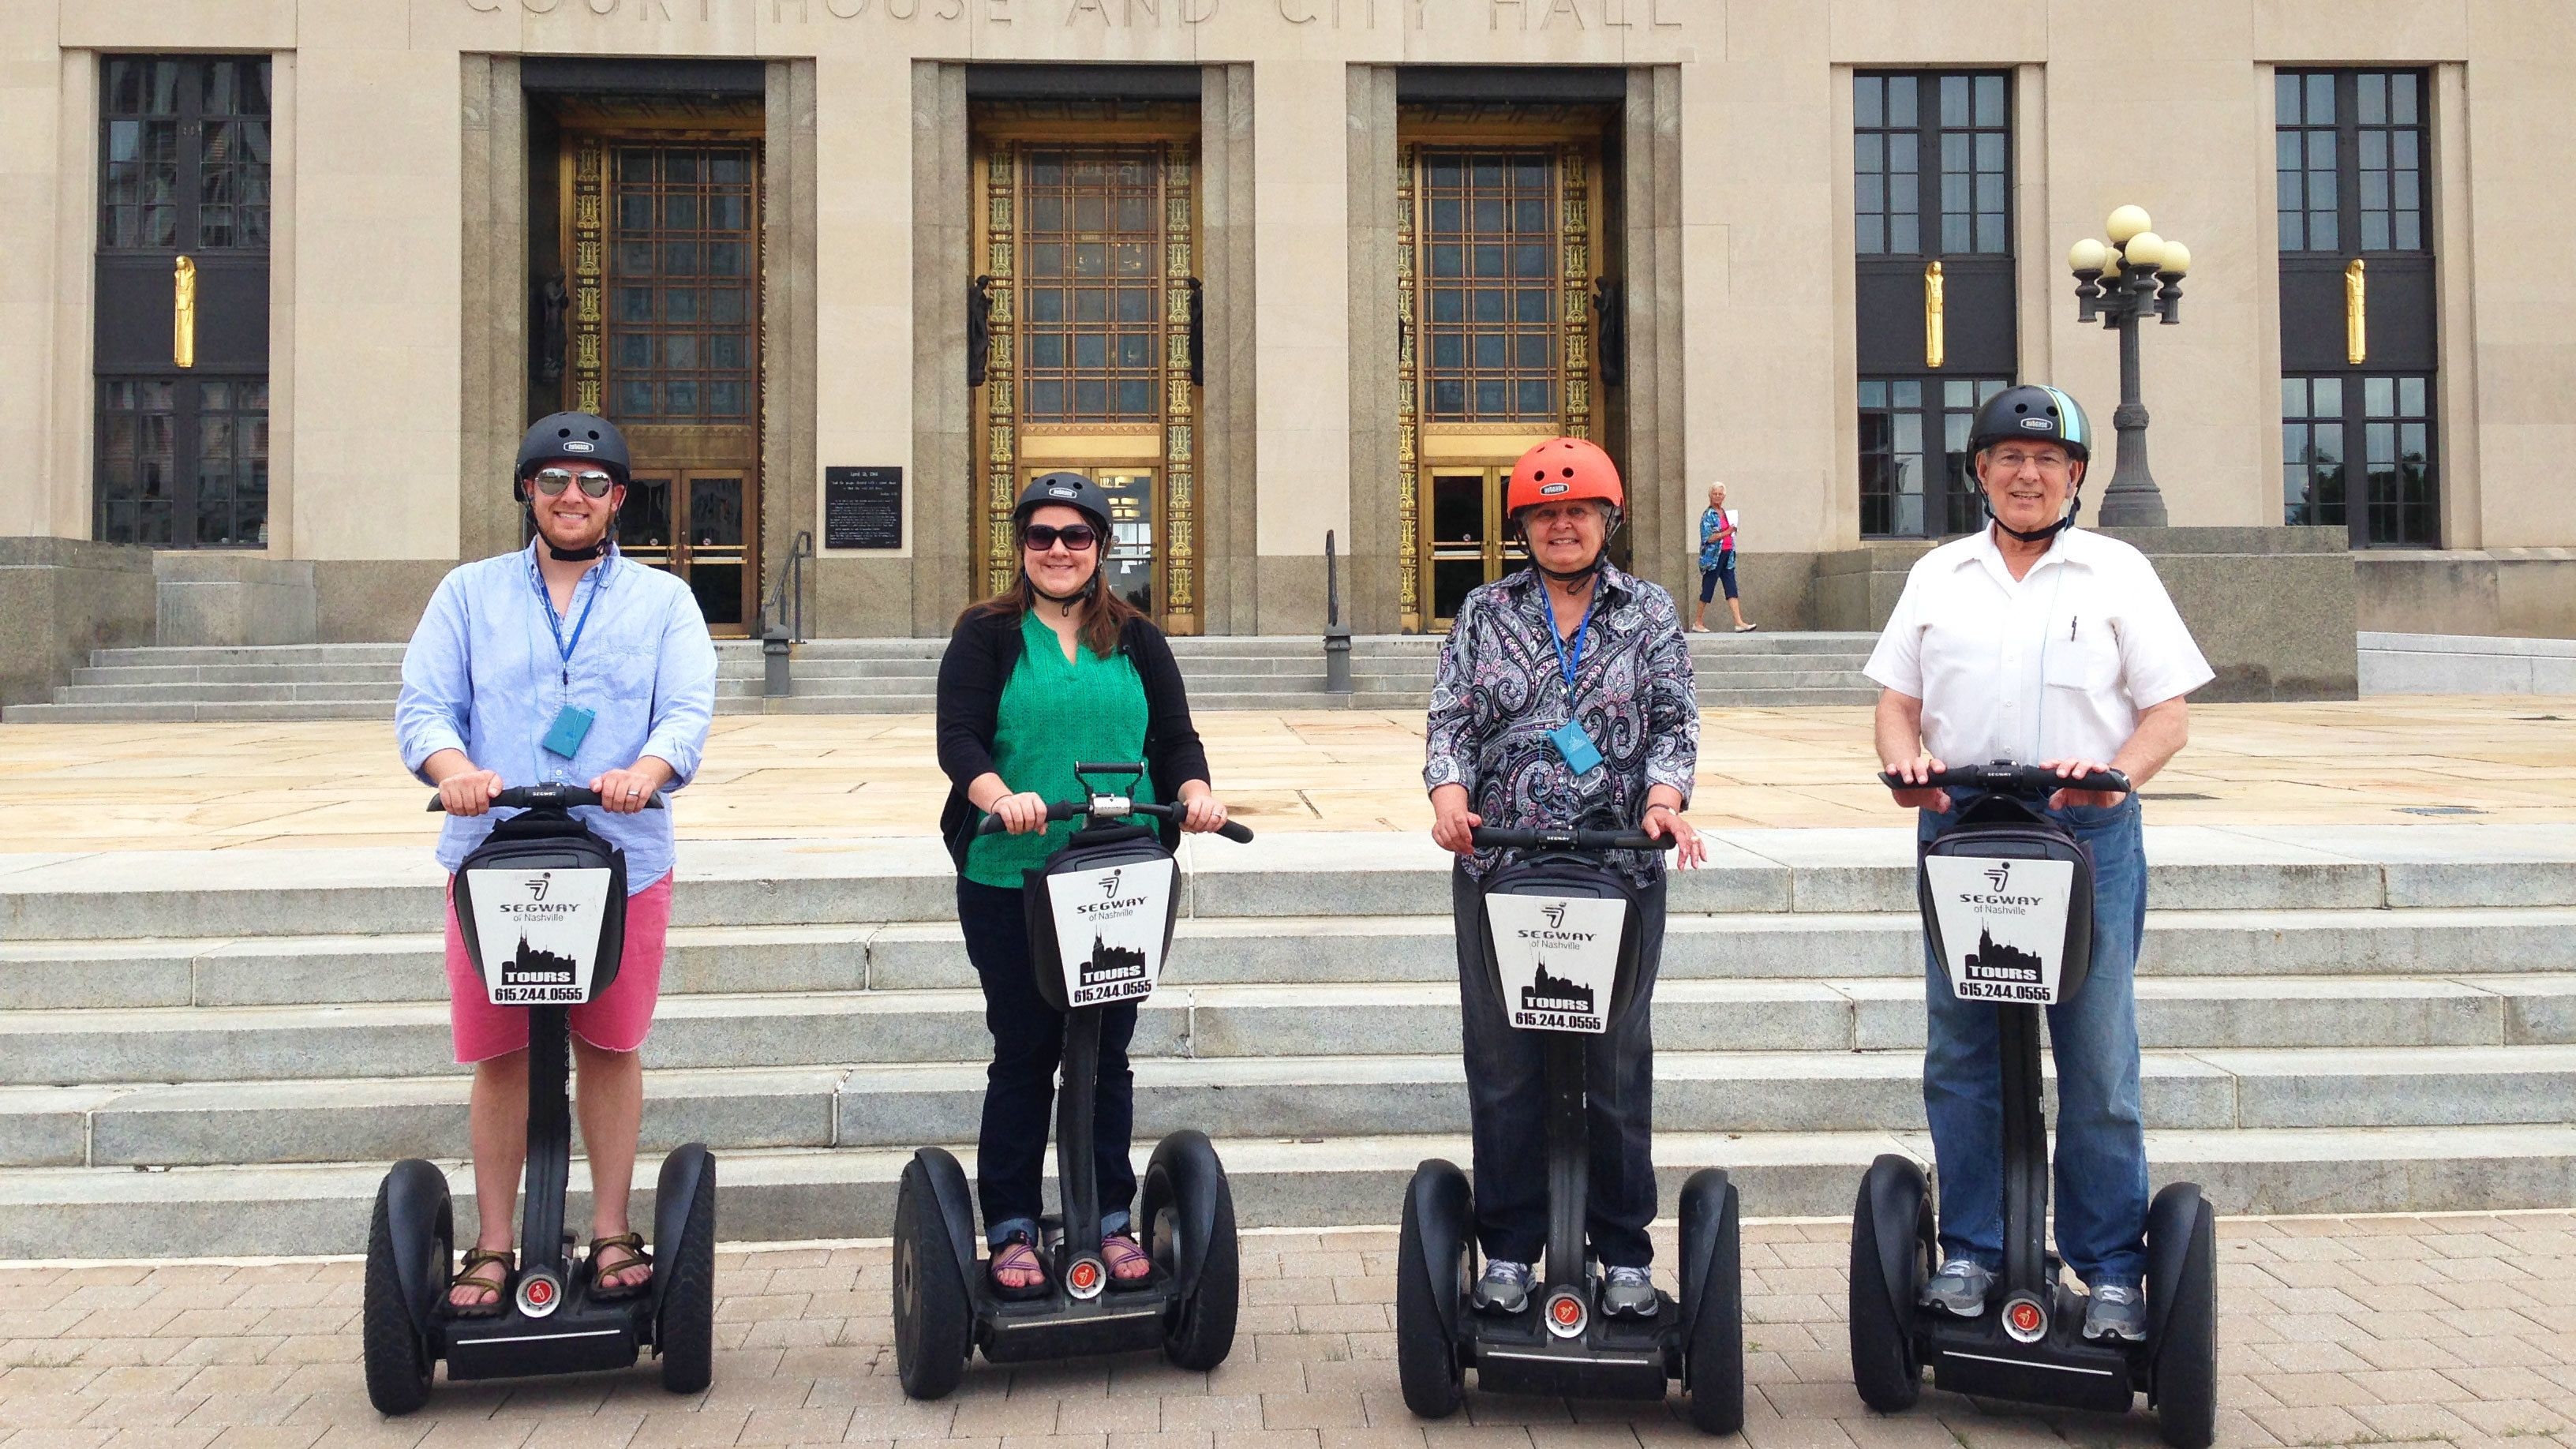 Segway group in front of city hall in Nashville